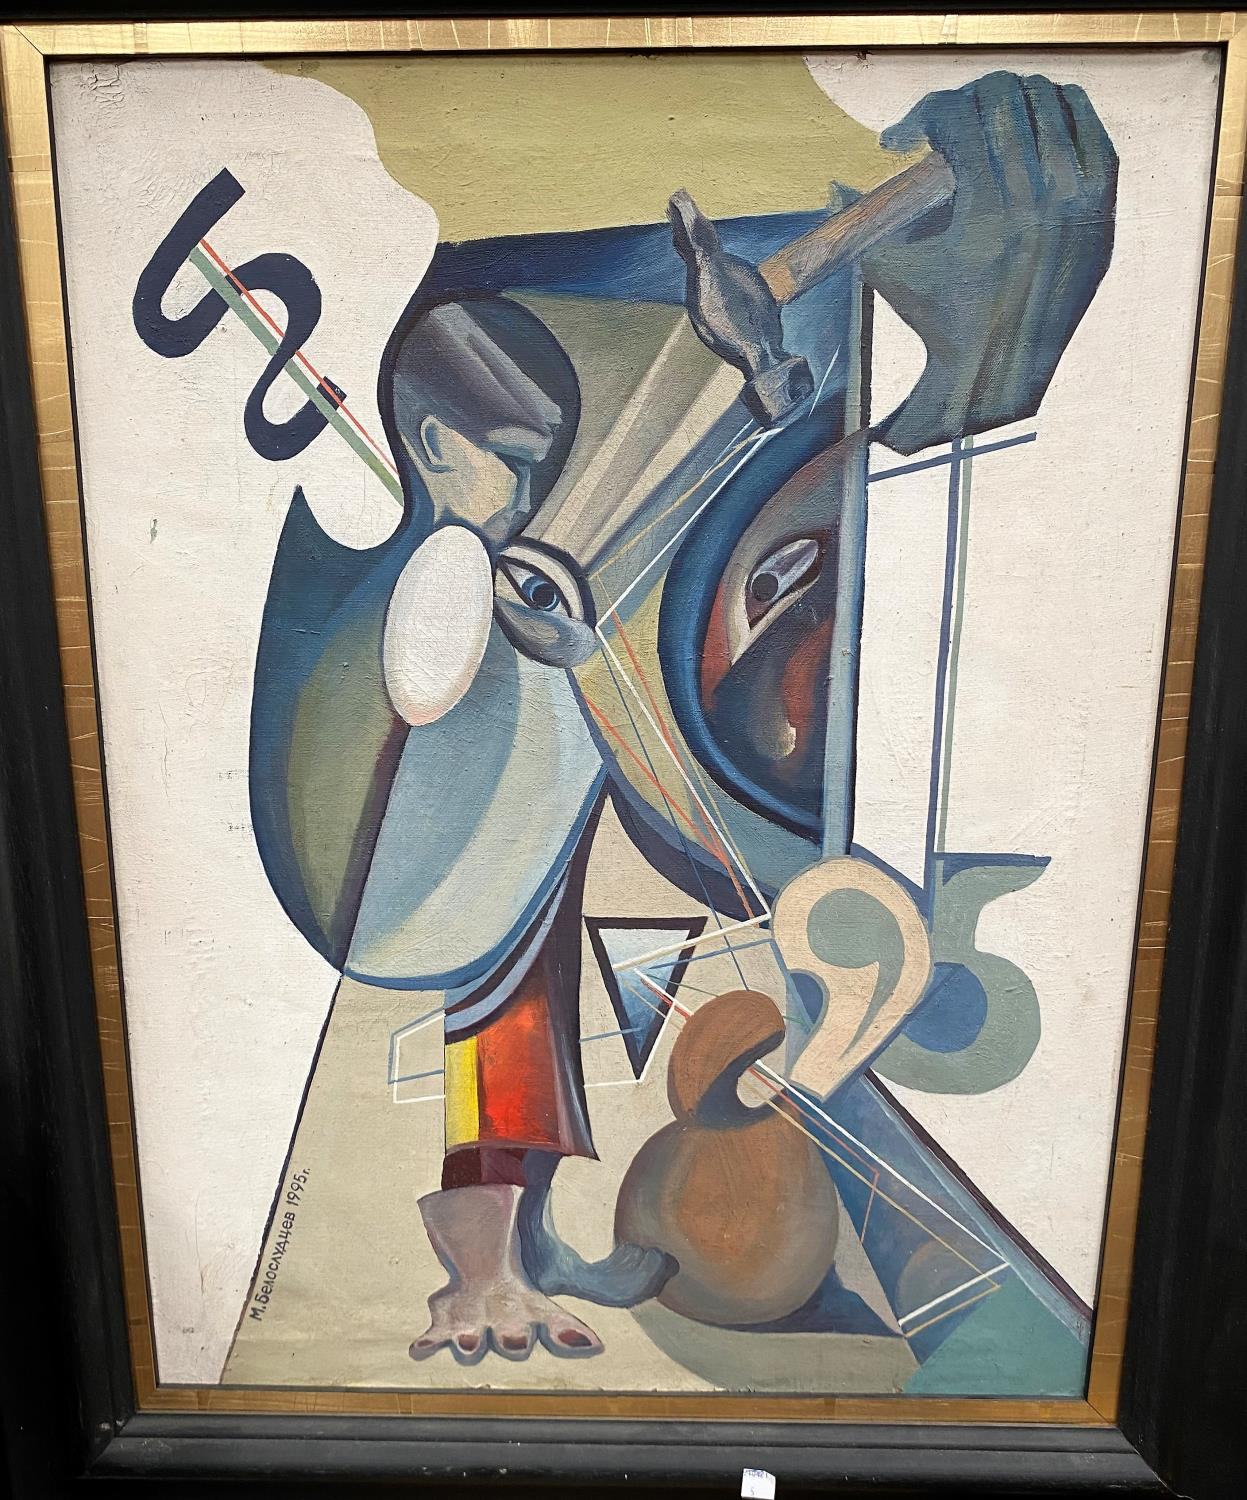 """M Balasludchev - """"Zerkalo"""" (in the looking glass), abstract oil on canvass in the manner of Picasso,"""